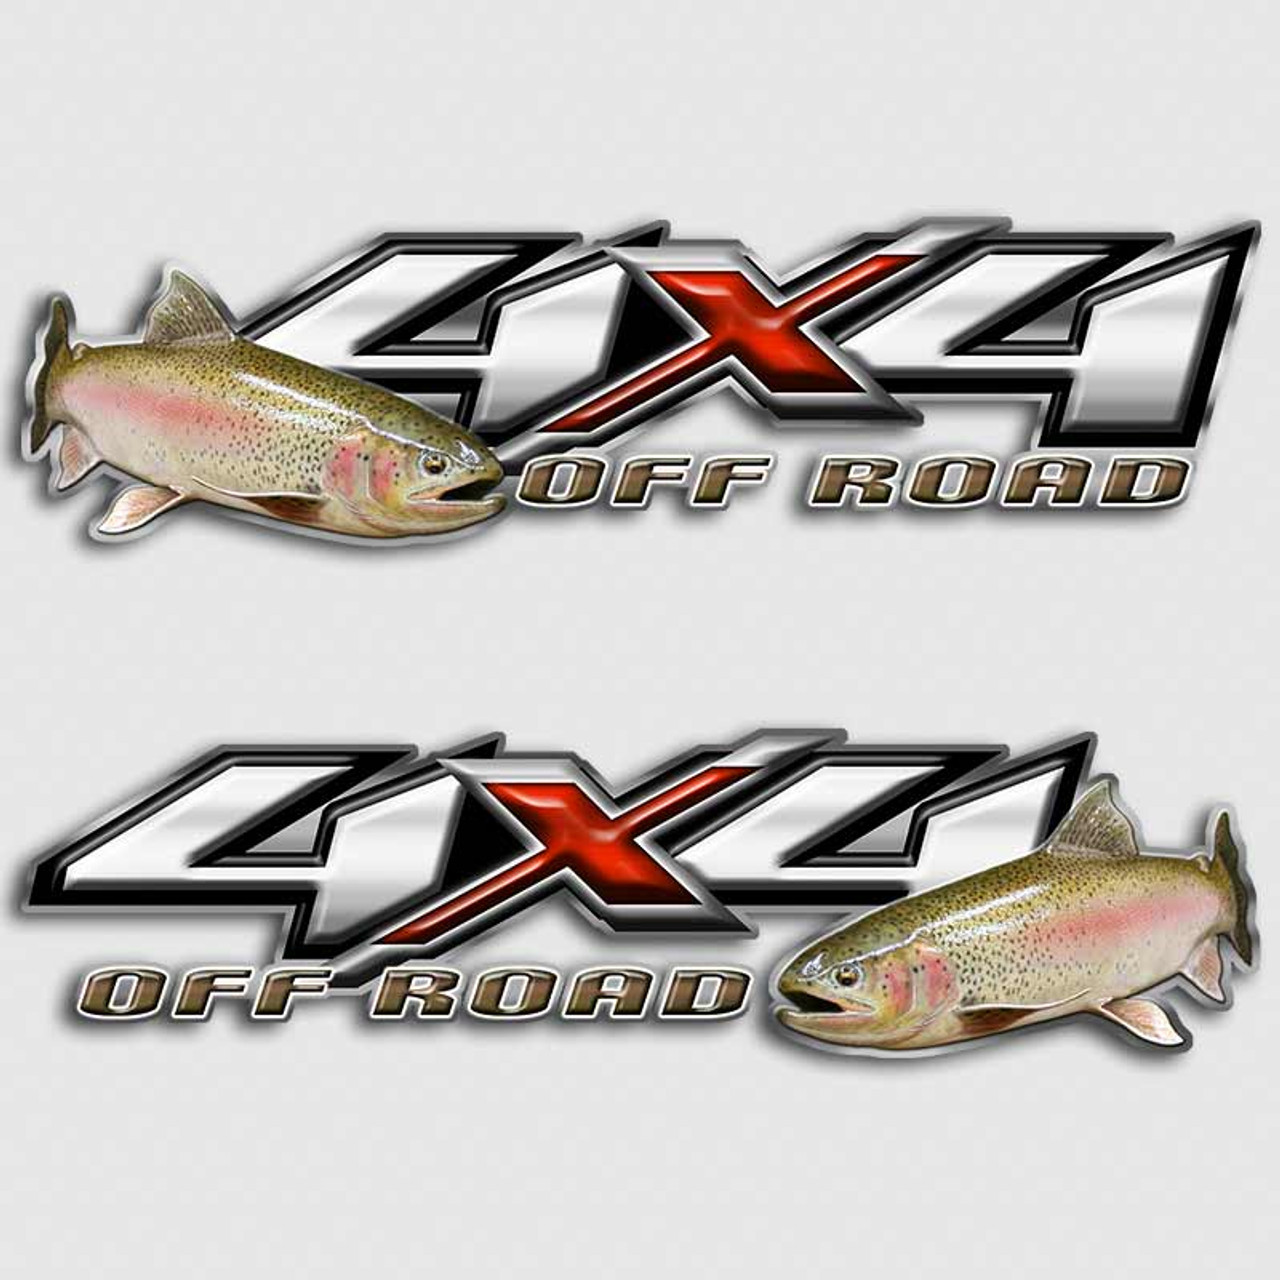 Rainbow trout fly fishing 4x4 chevy silverado truck decals for Fishing stickers for trucks